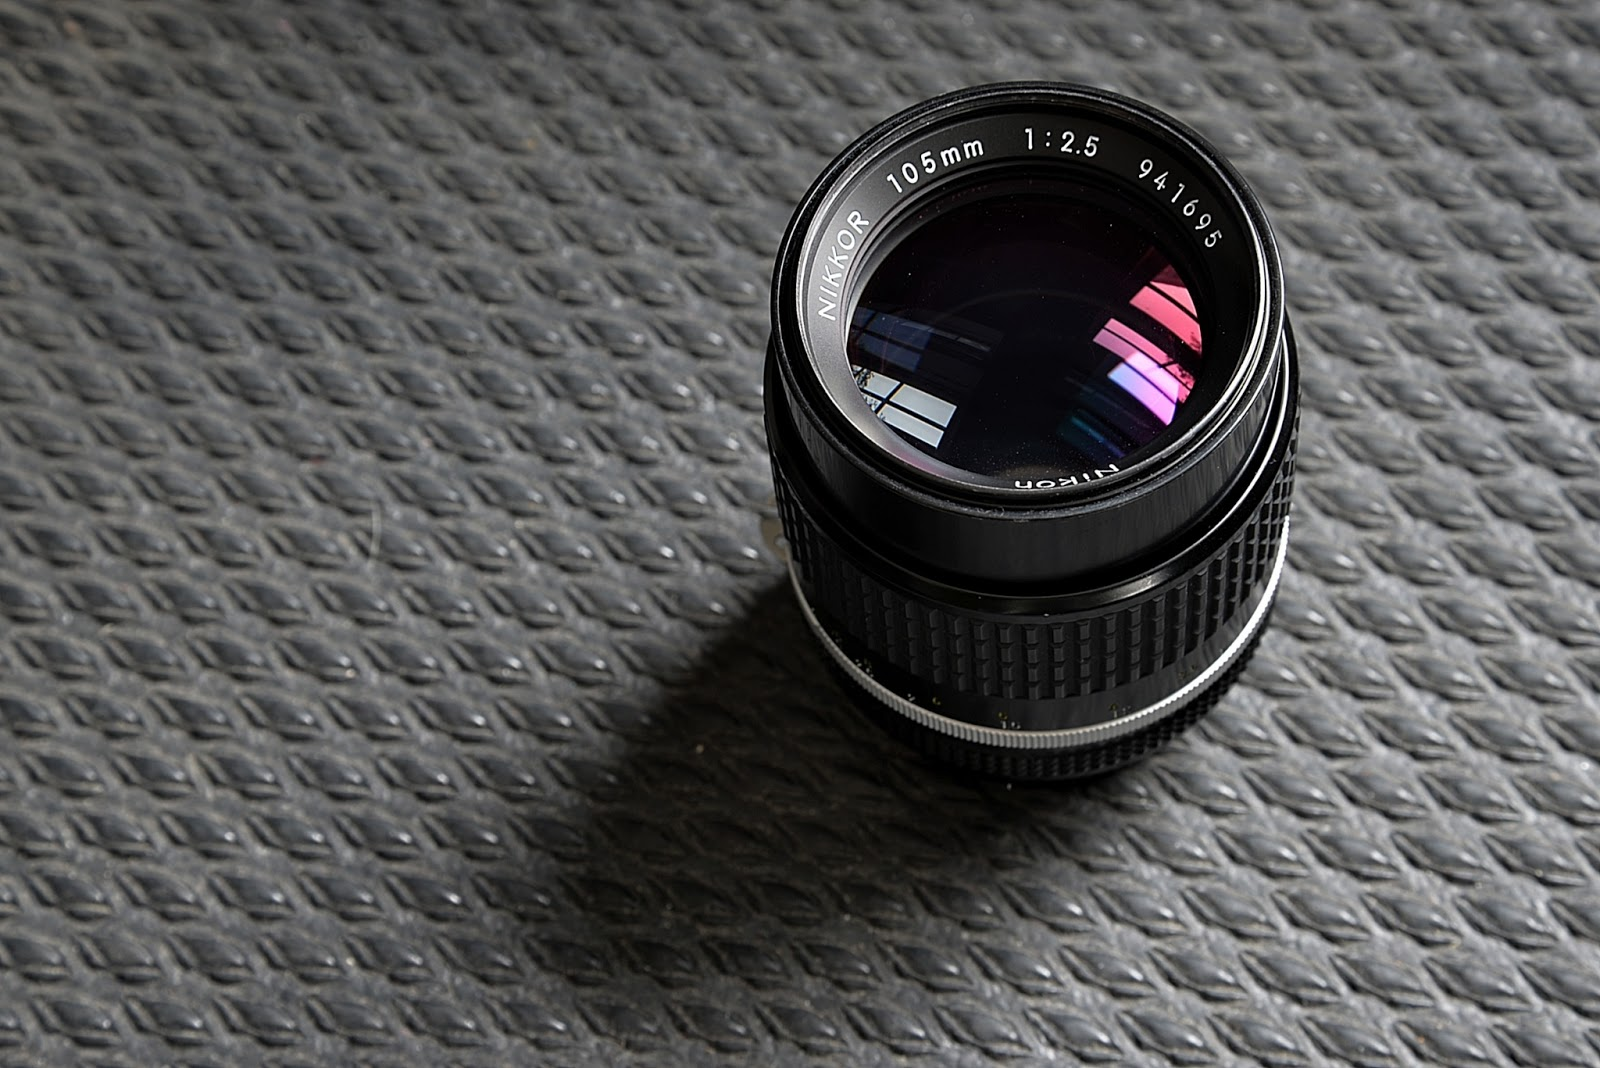 How the hell do you focus those manual focus lenses on modern DSLRs? Very  carefully.